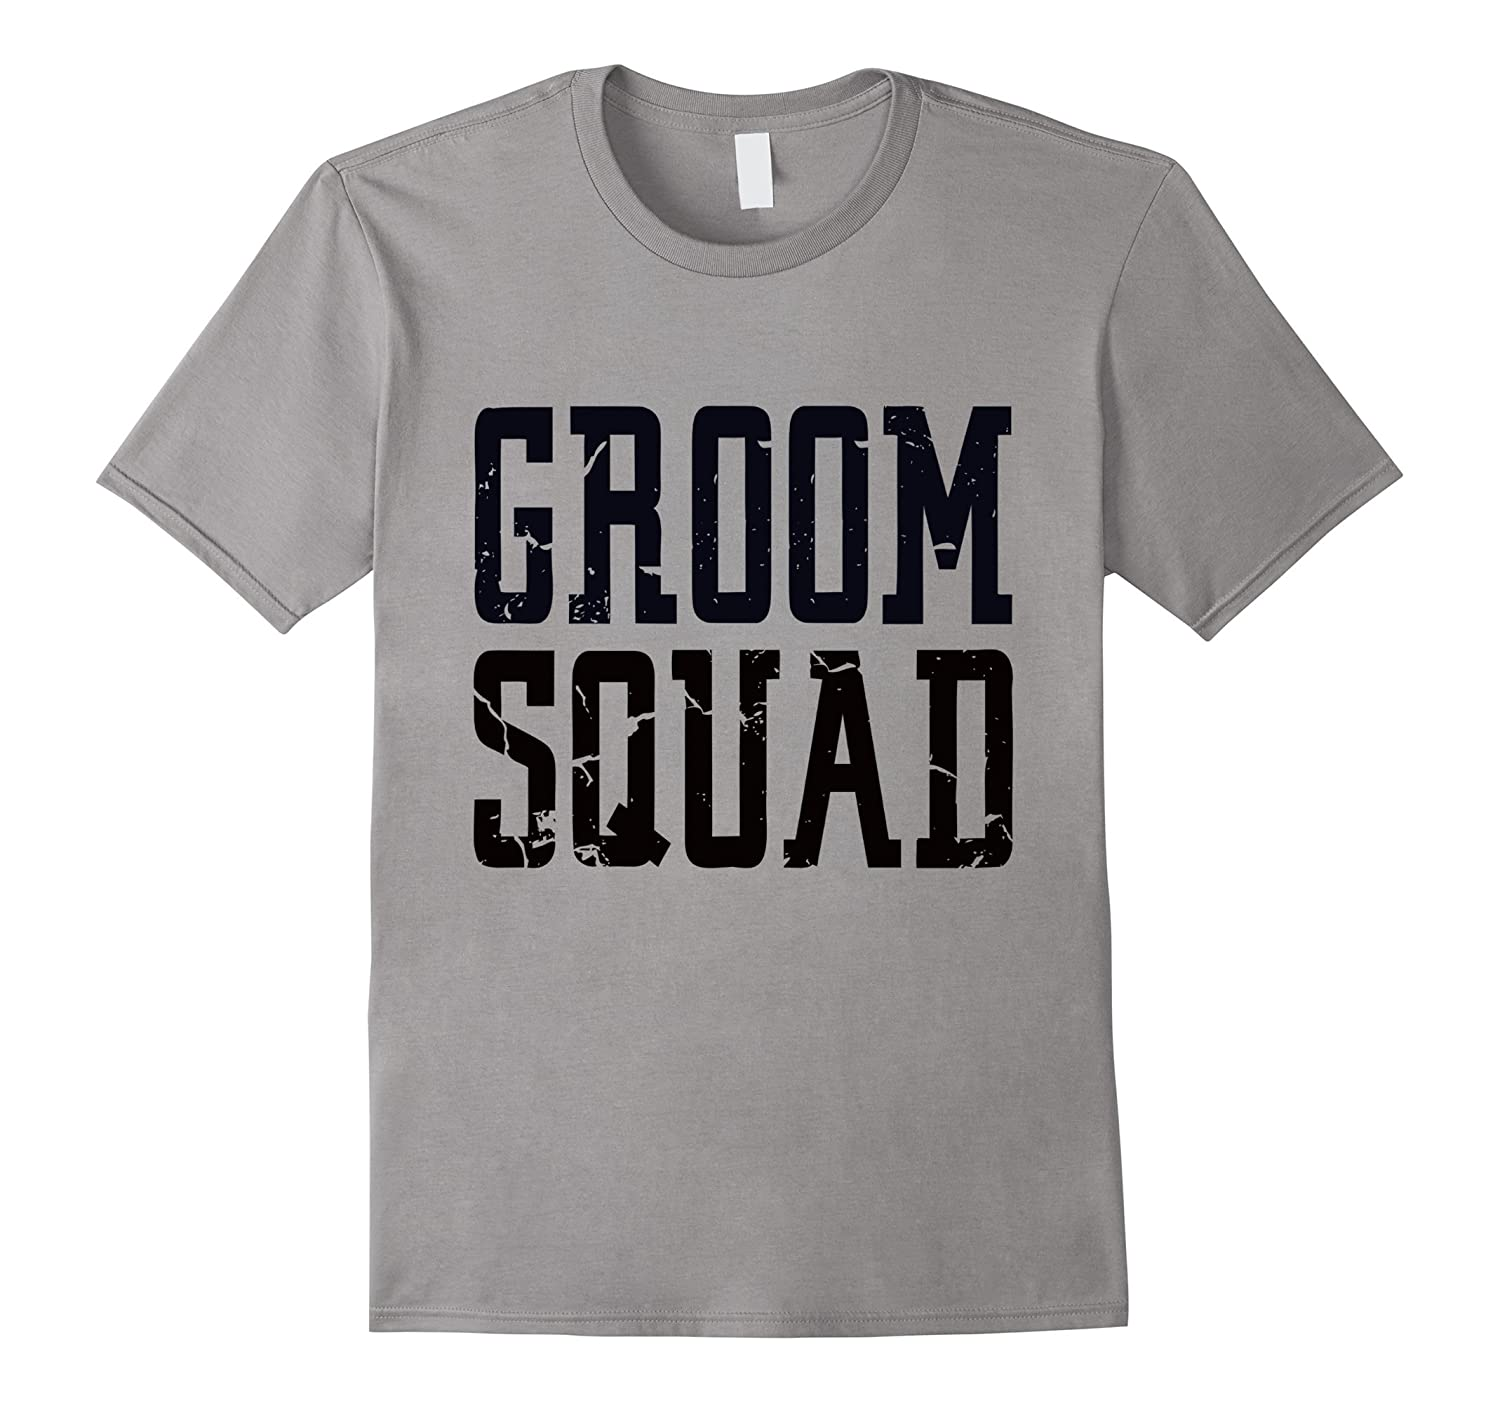 Groom Squad T-Shirt - Bridal Party Groomsmen Shirt-RT